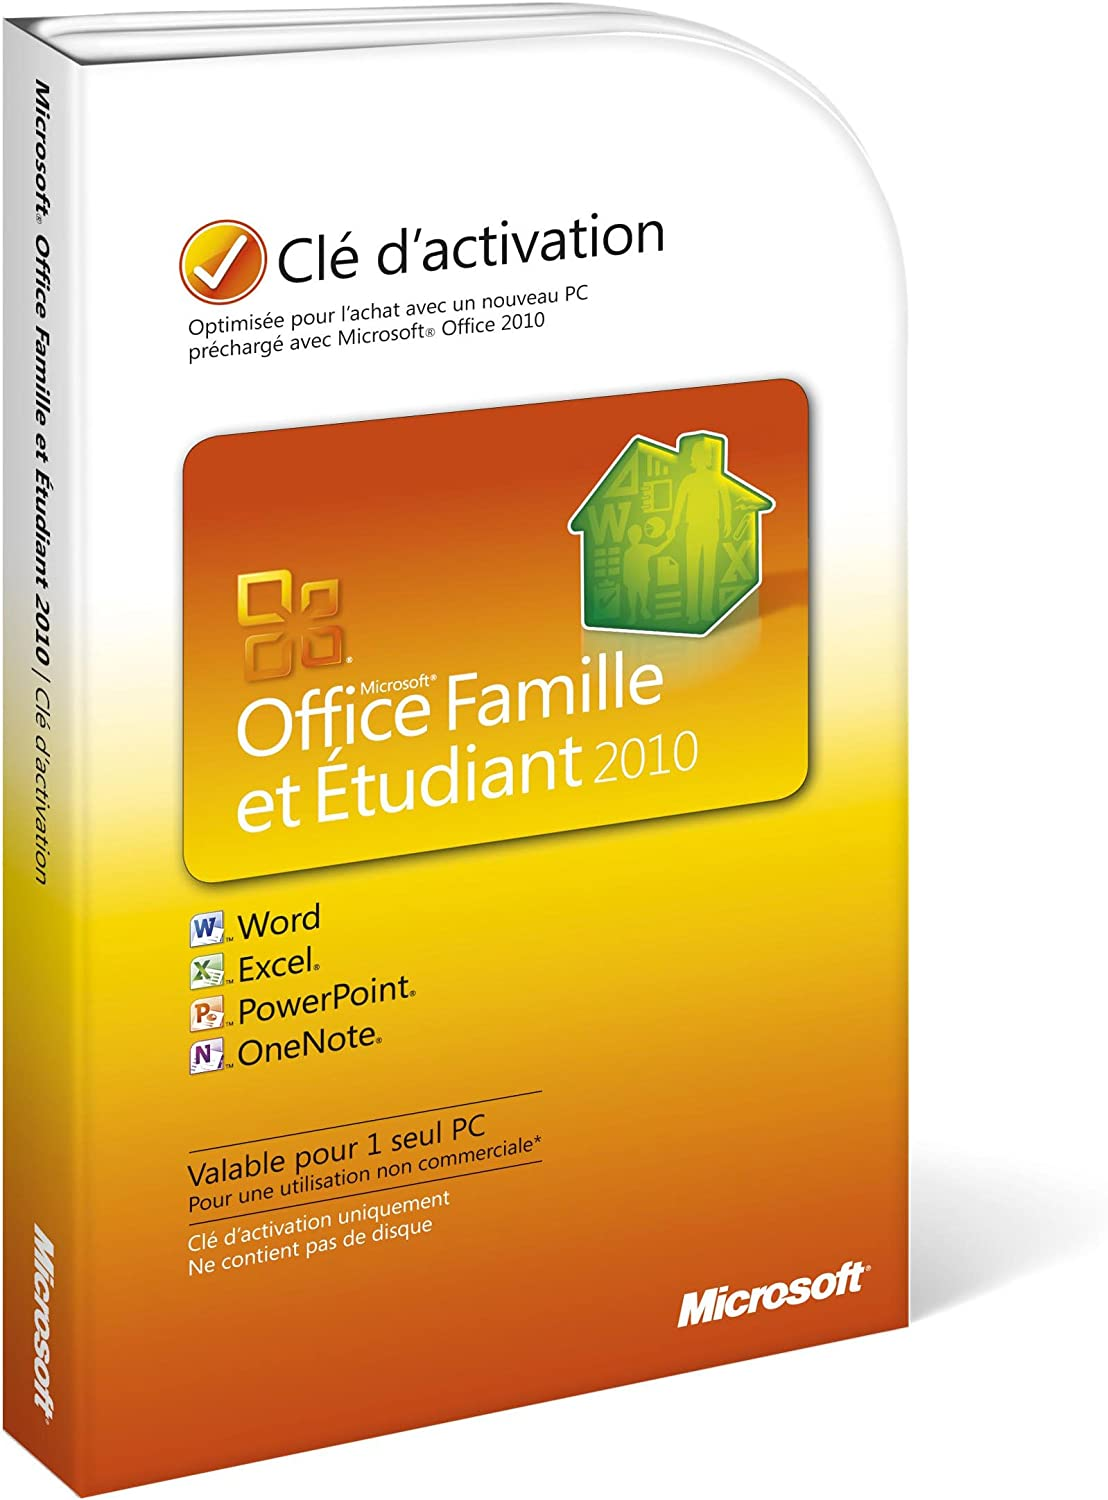 Microsoft Office Home & Student 2010 FR - Suites de programas (1 usuario(s), 3000 MB, 256 MB, 500 MHz): Amazon.es: Software